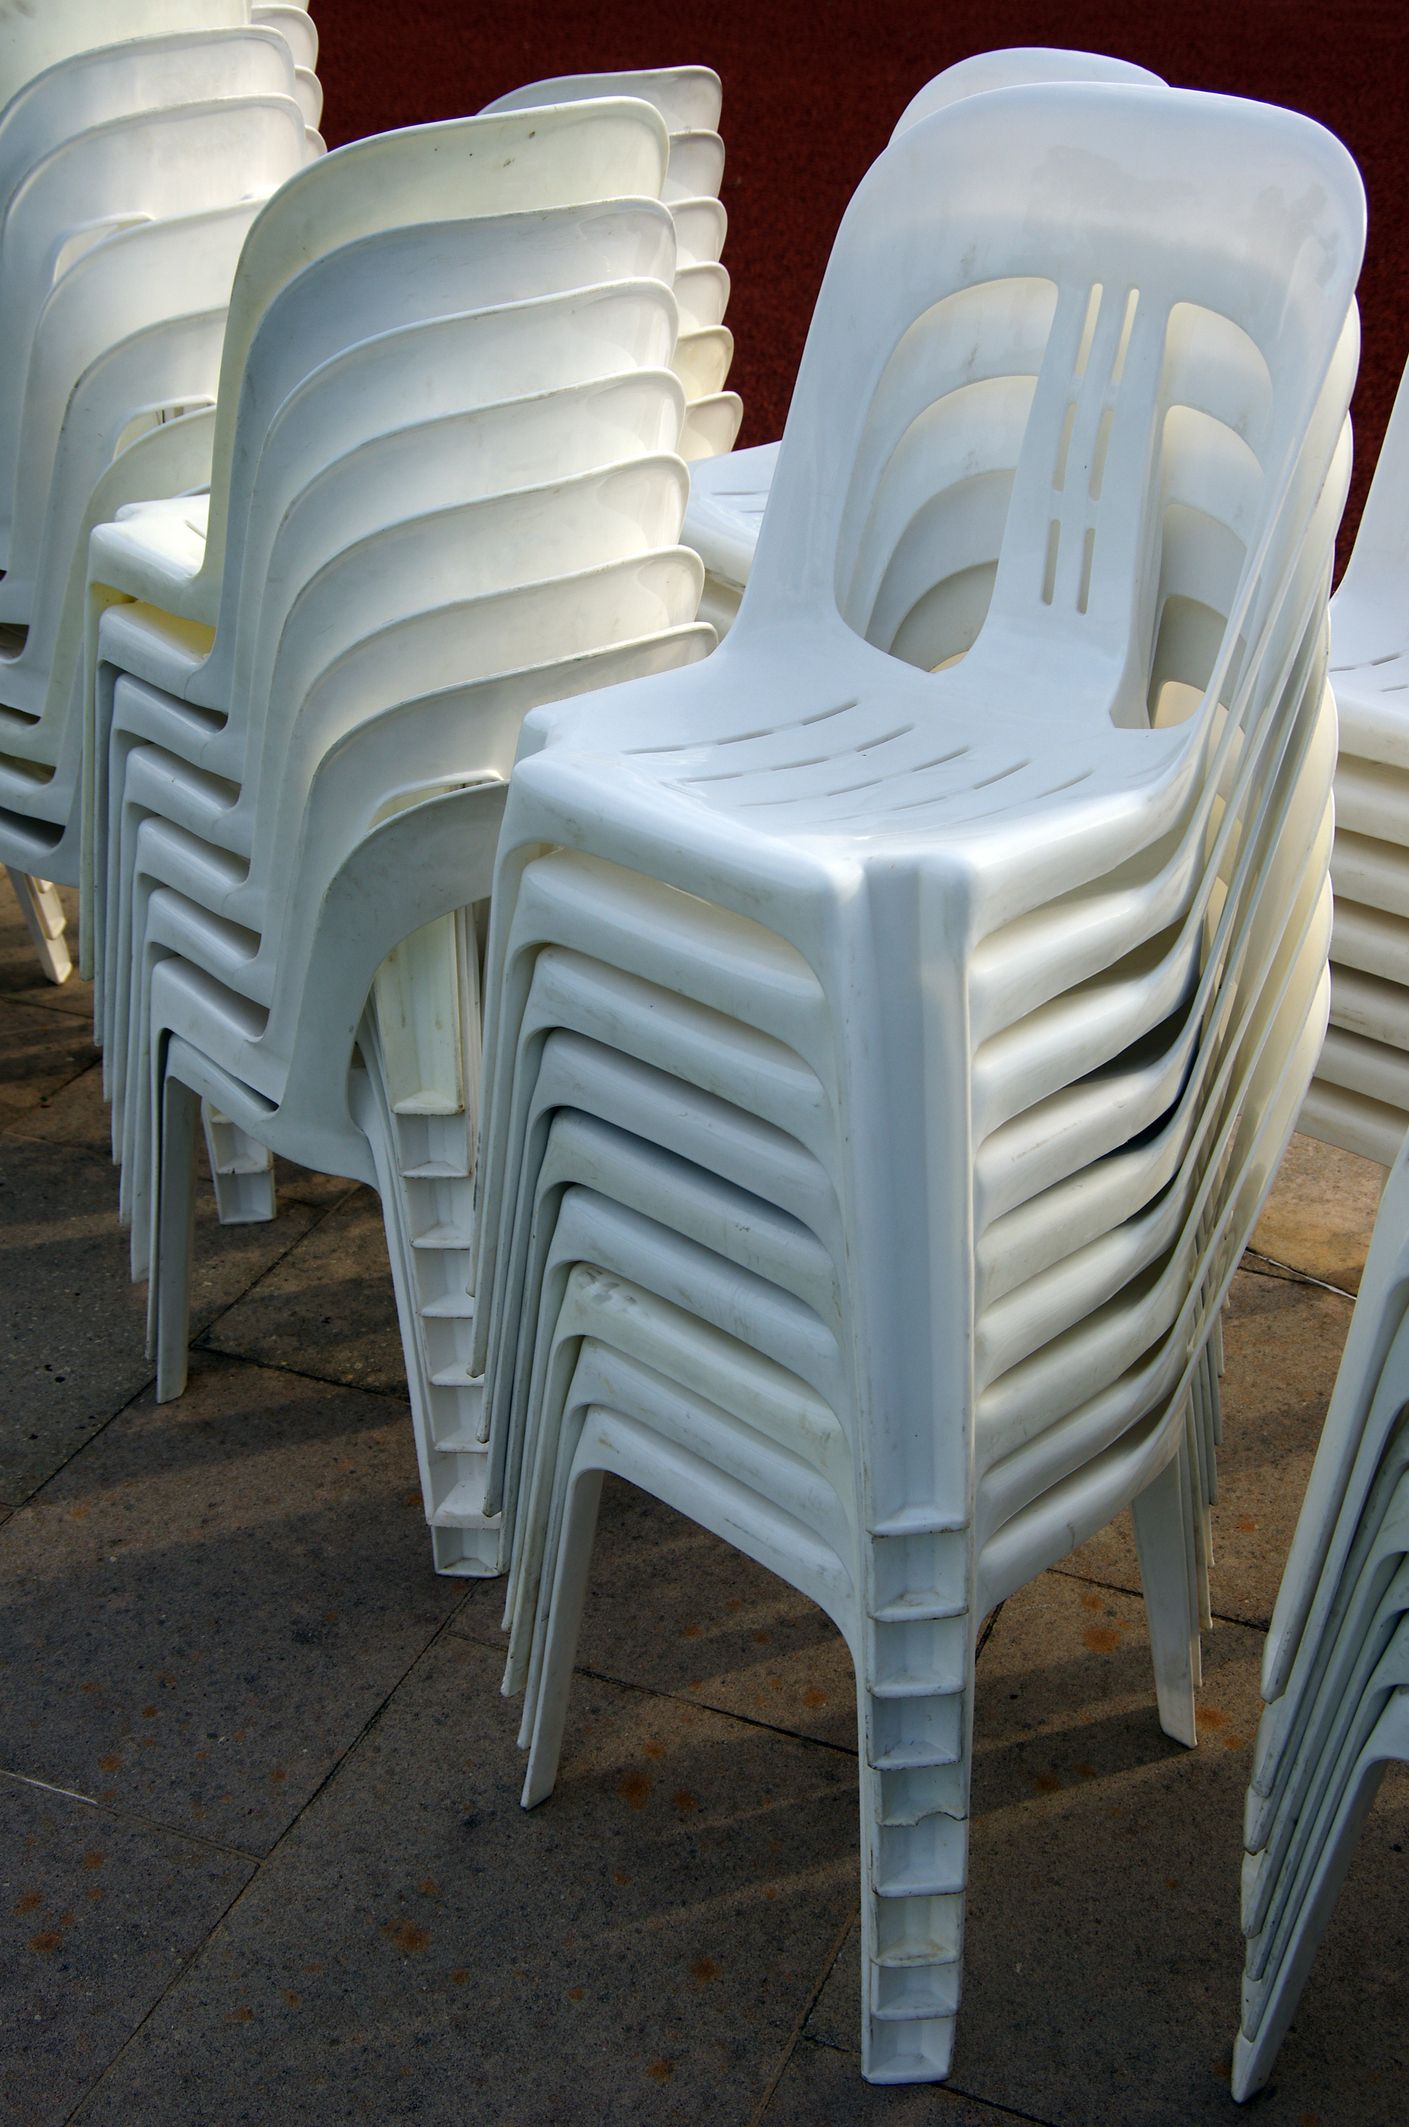 Types Of Chairs 50 Iconic Chairs You Should Know